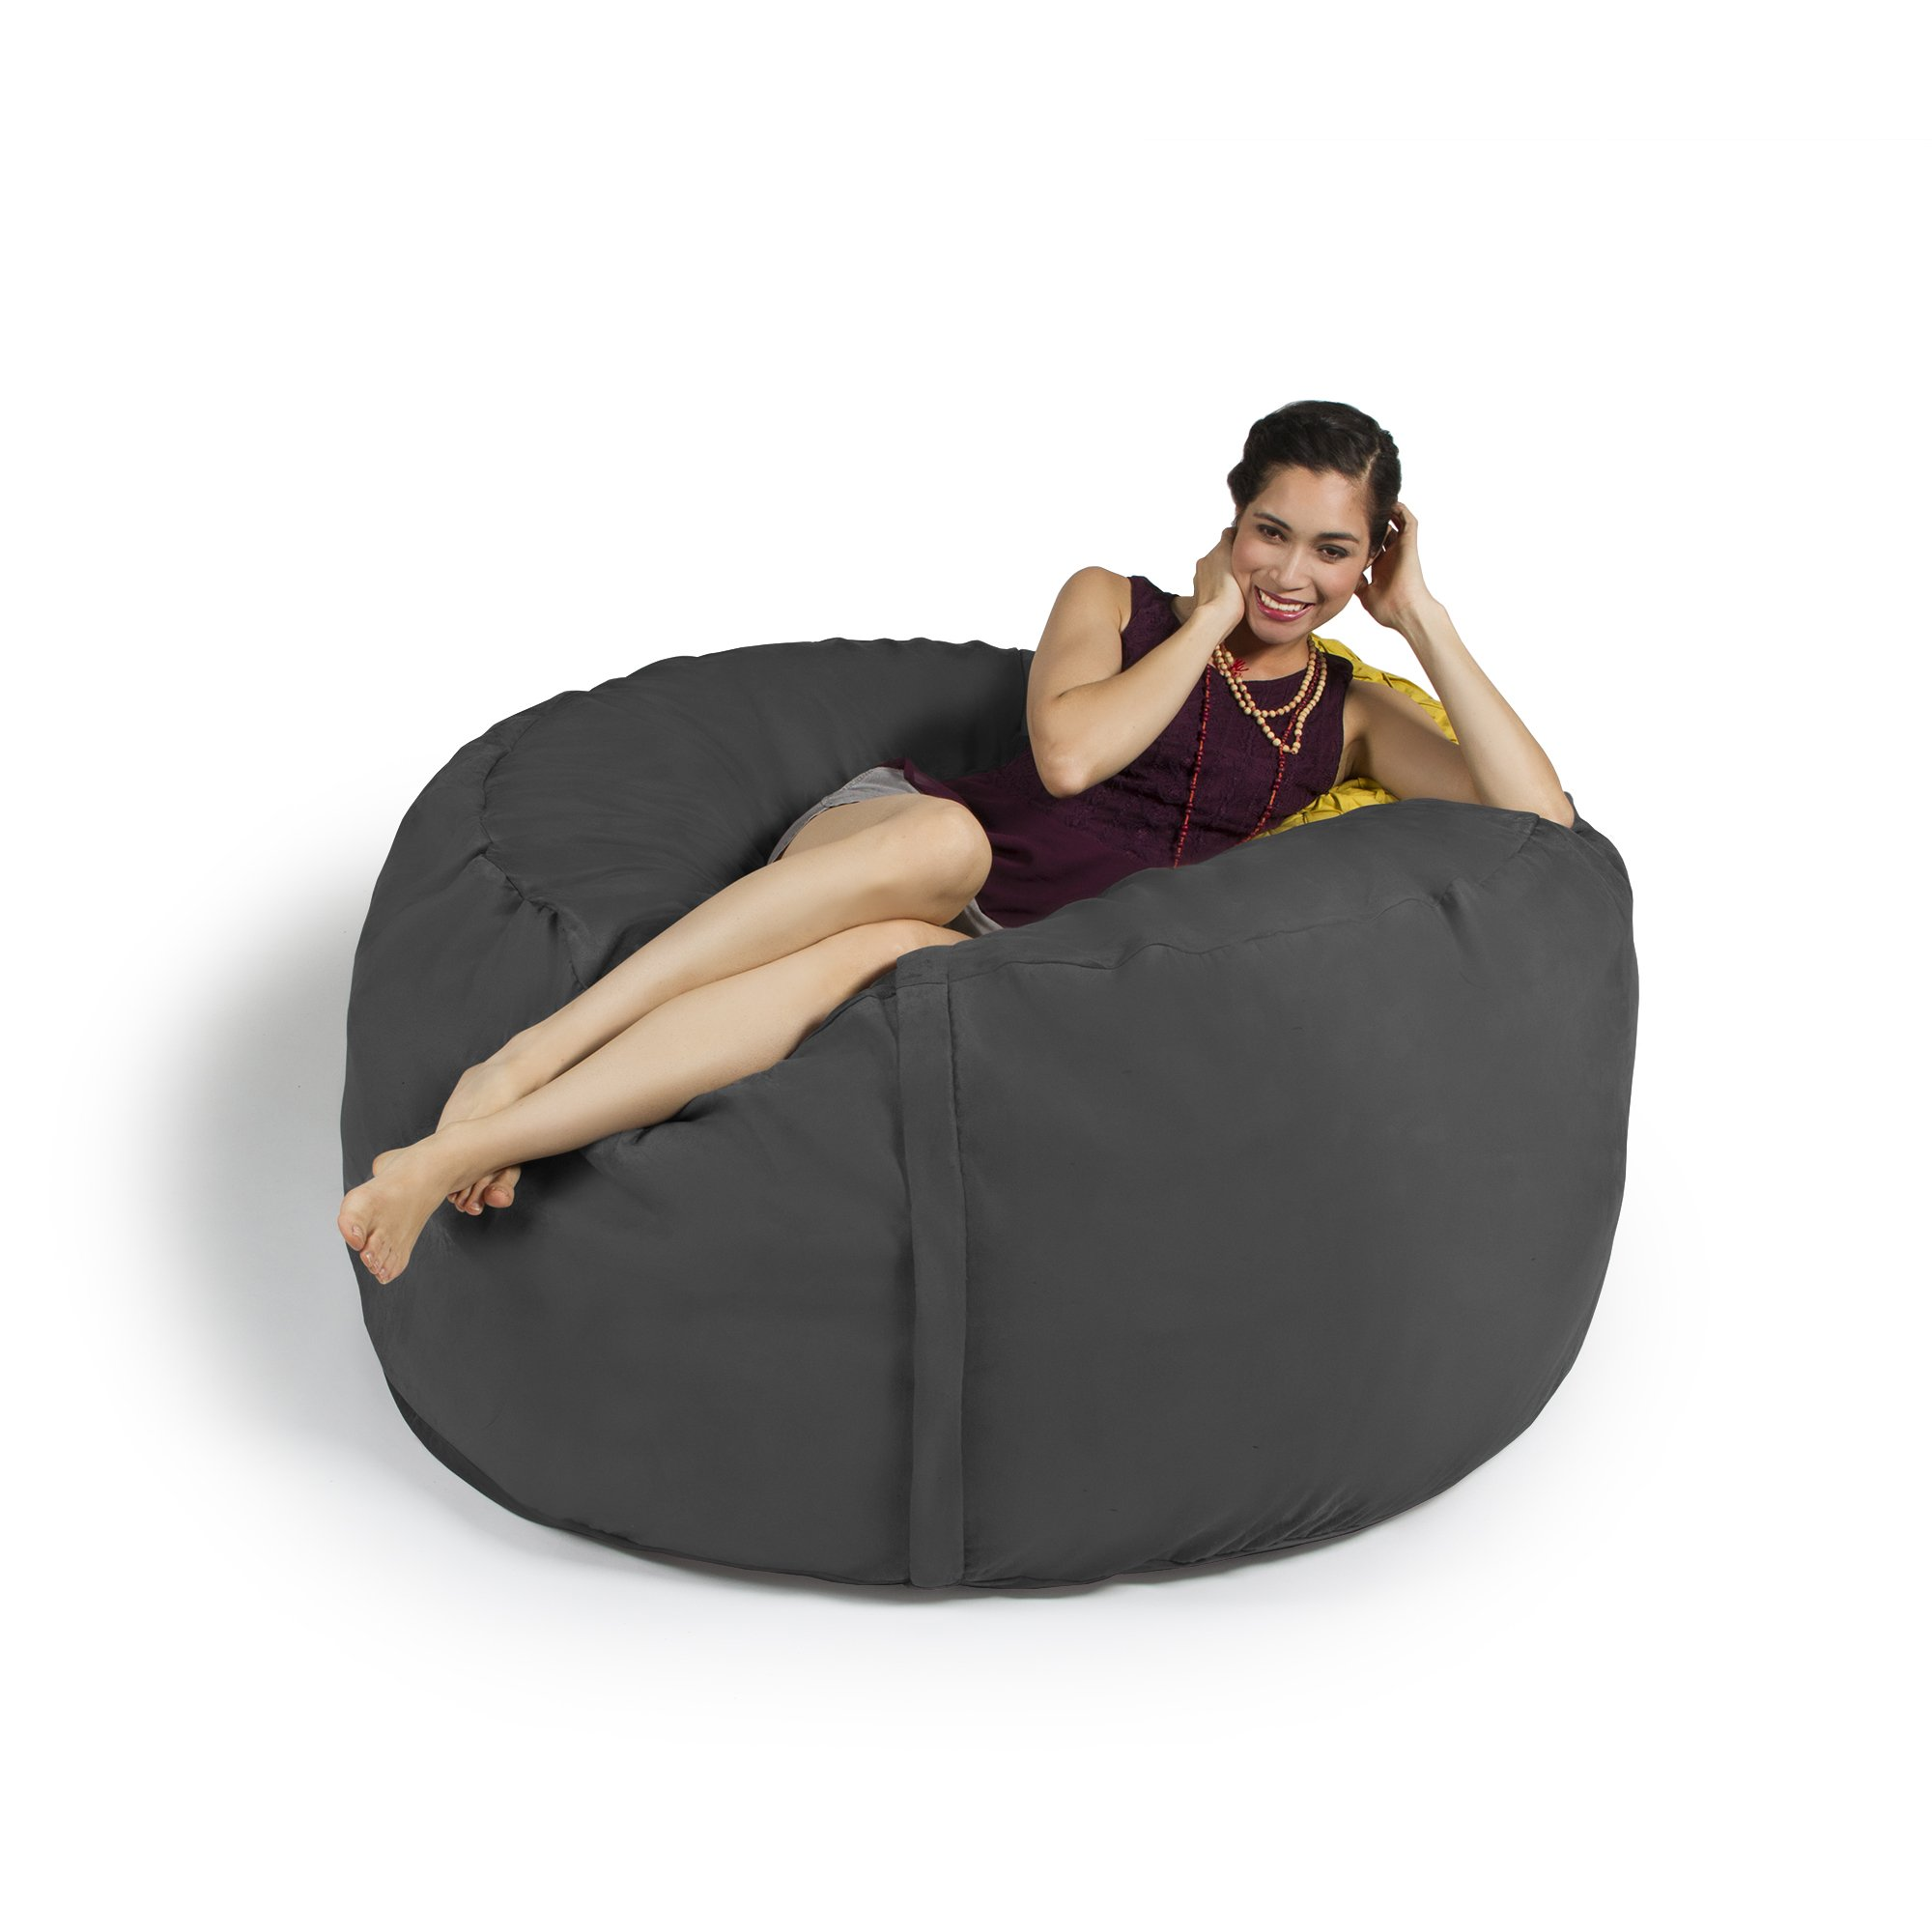 Get Quotations · Jaxx 5 Foot Saxx   Big Bean Bag Chair For Adults, Charcoal